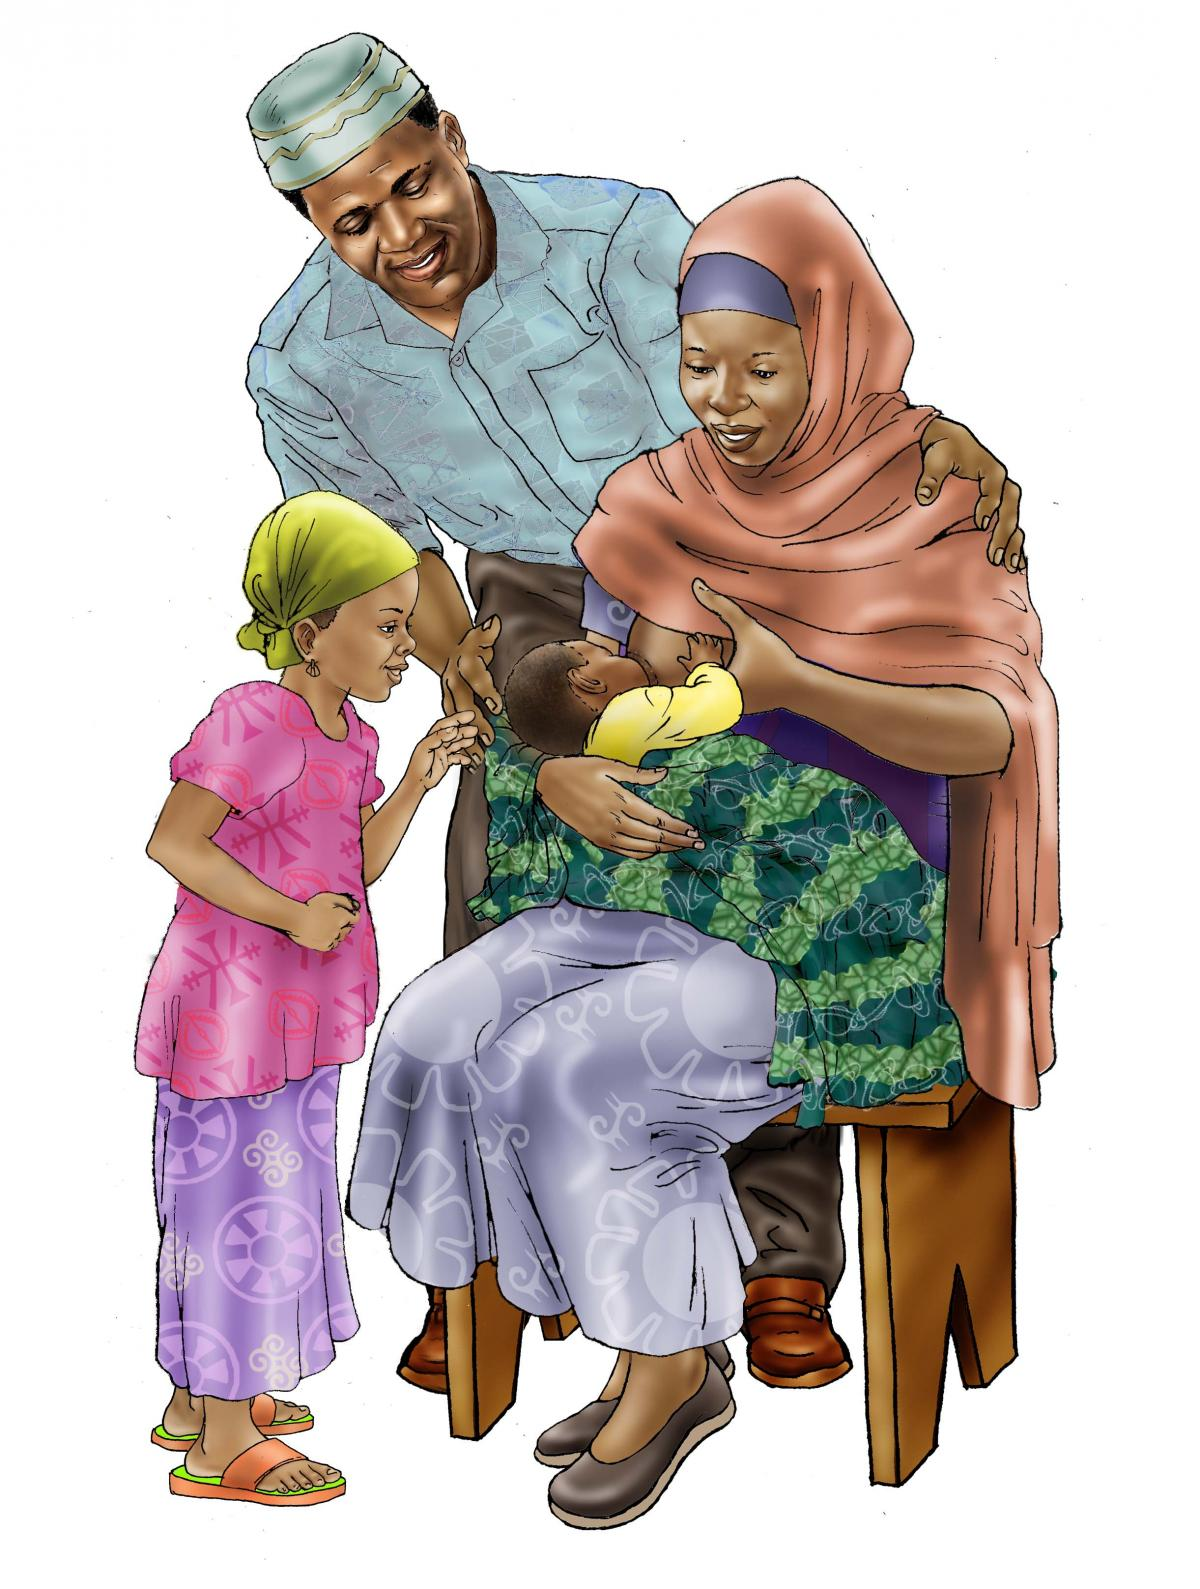 Family - Family Support for Breastfeeding - 00B - Niger